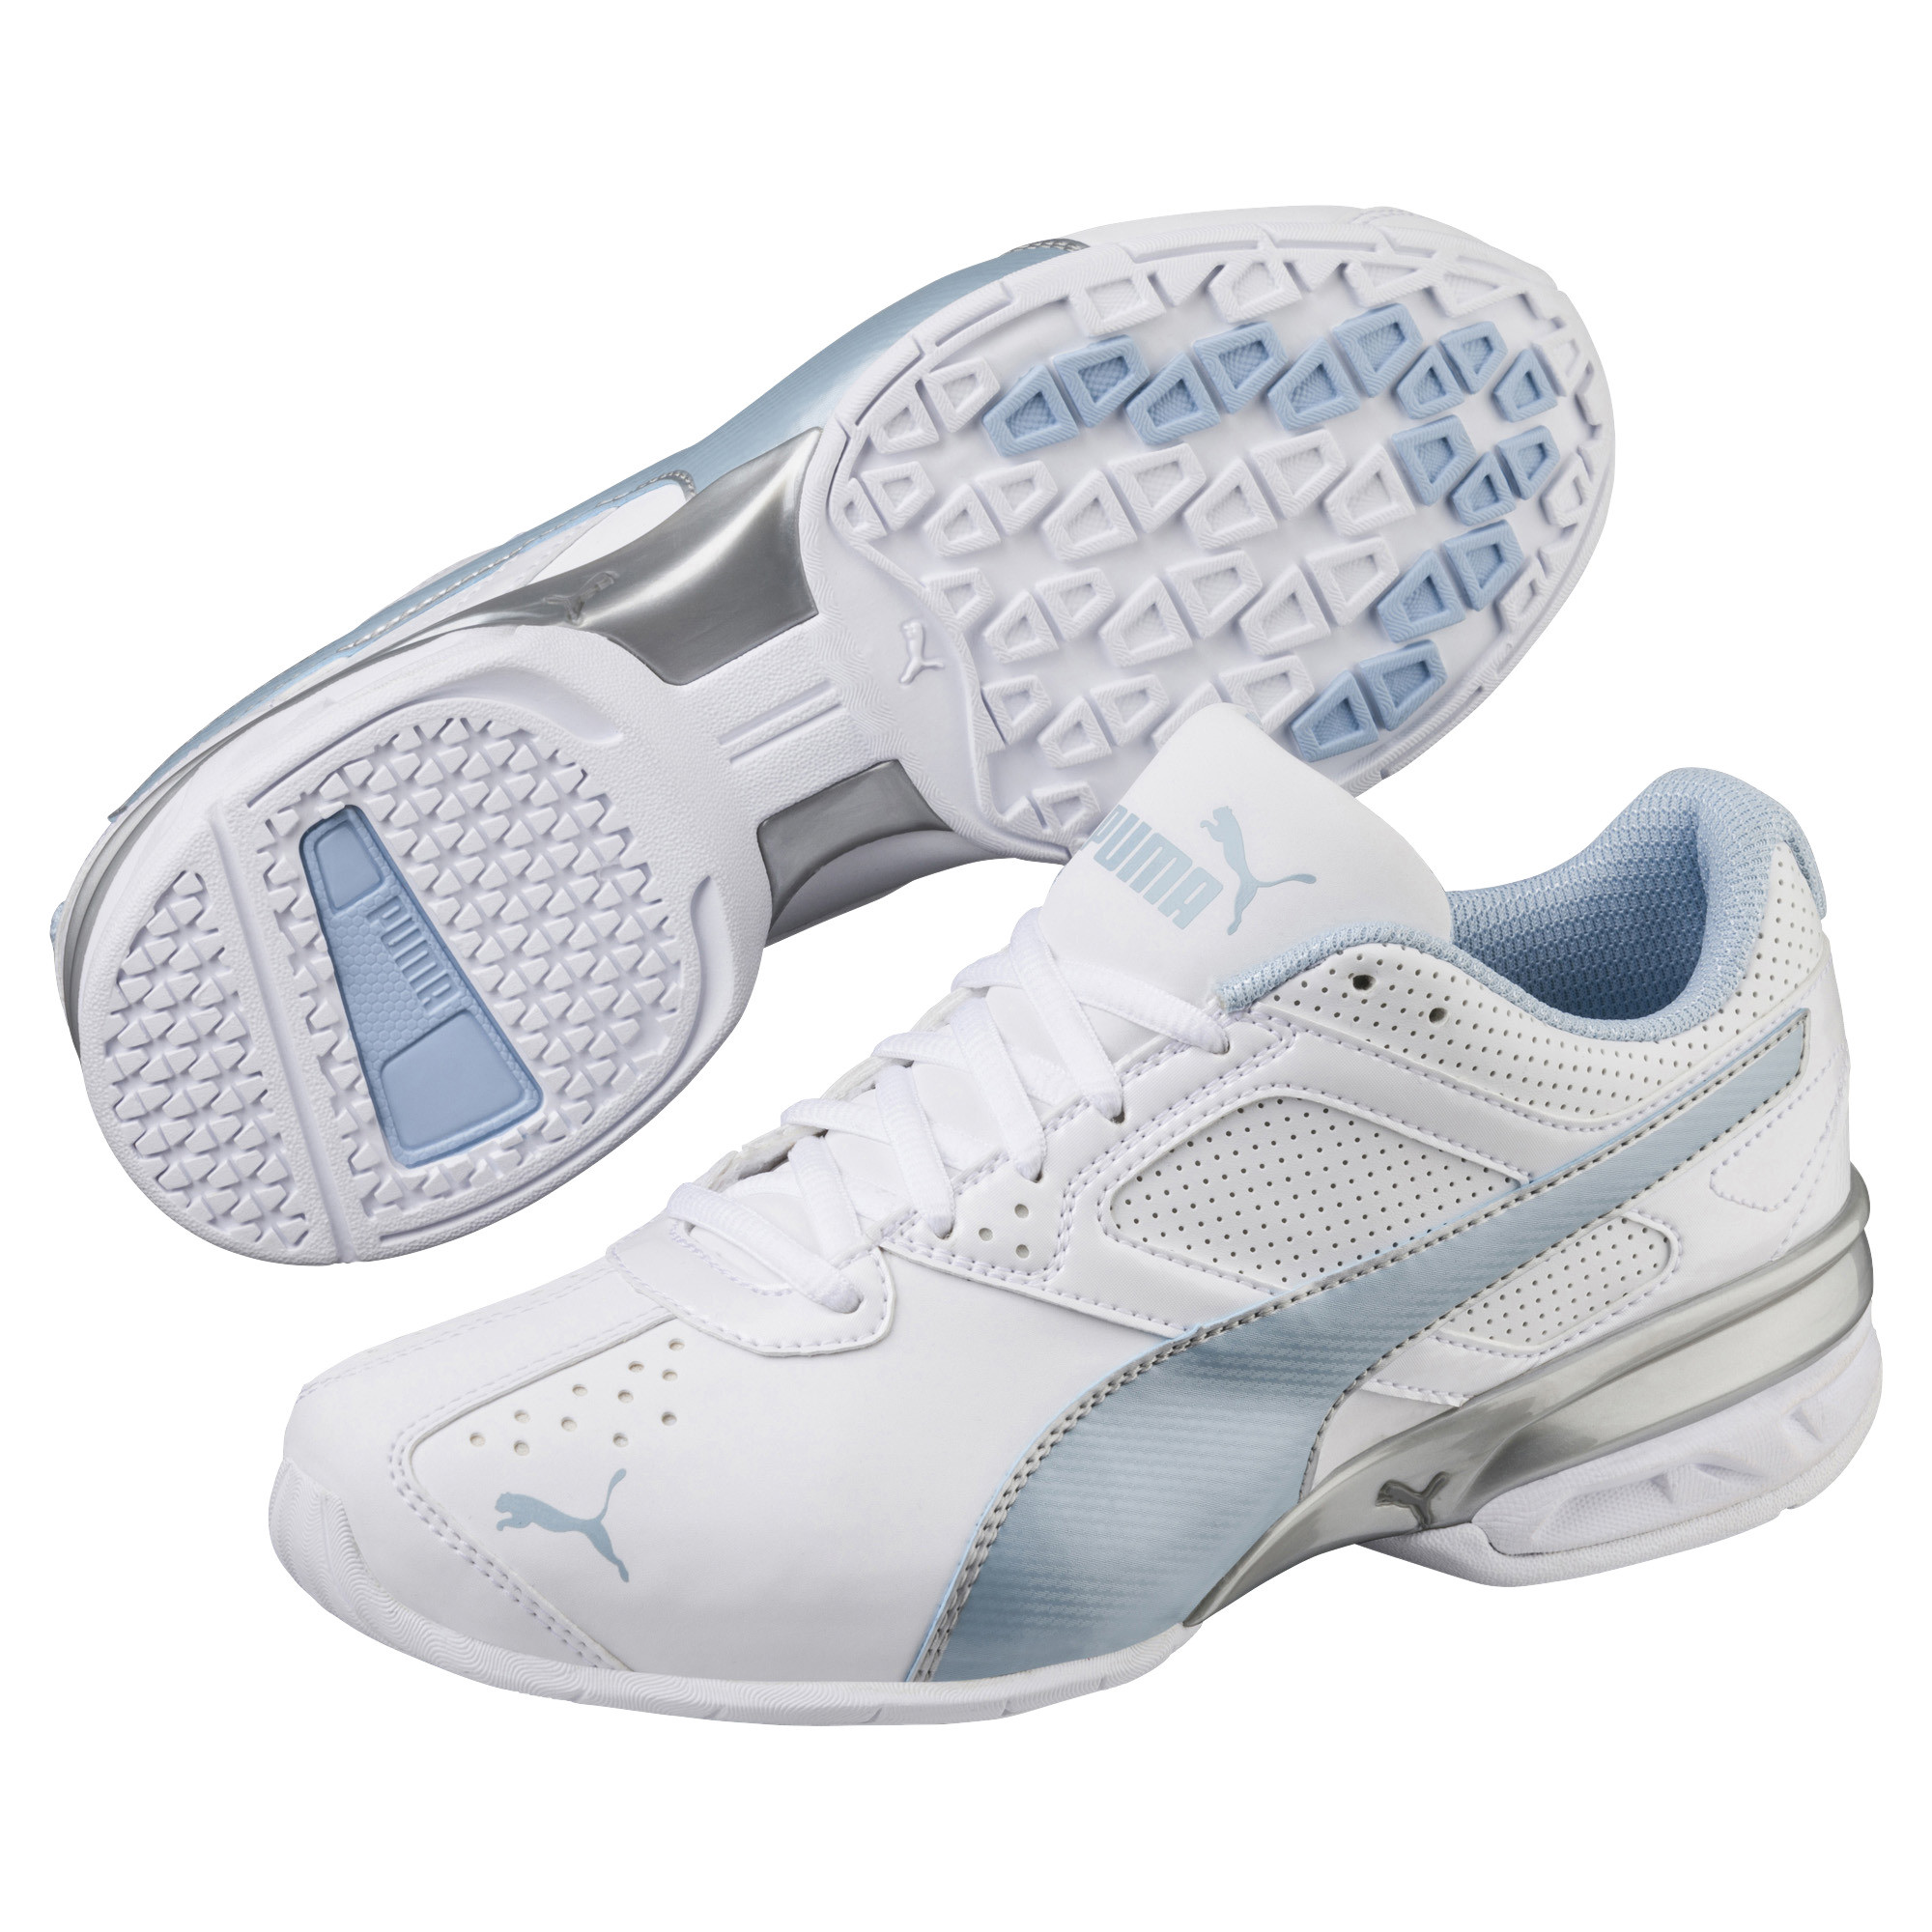 PUMA-Tazon-6-FM-Women-039-s-Sneakers-Women-Shoe-Running thumbnail 15